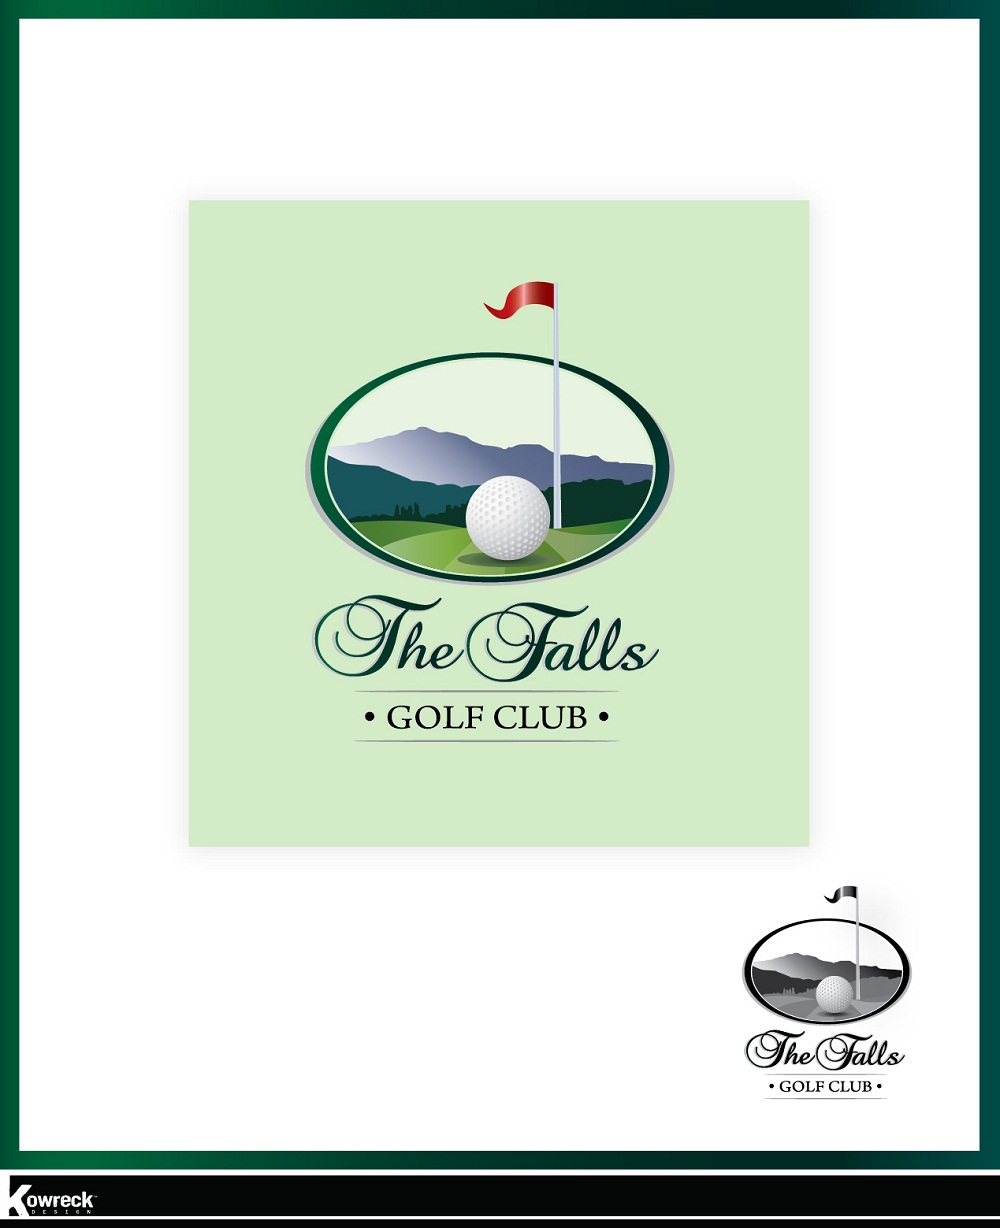 Logo Design by kowreck - Entry No. 10 in the Logo Design Contest The Falls Golf Club Logo Design.